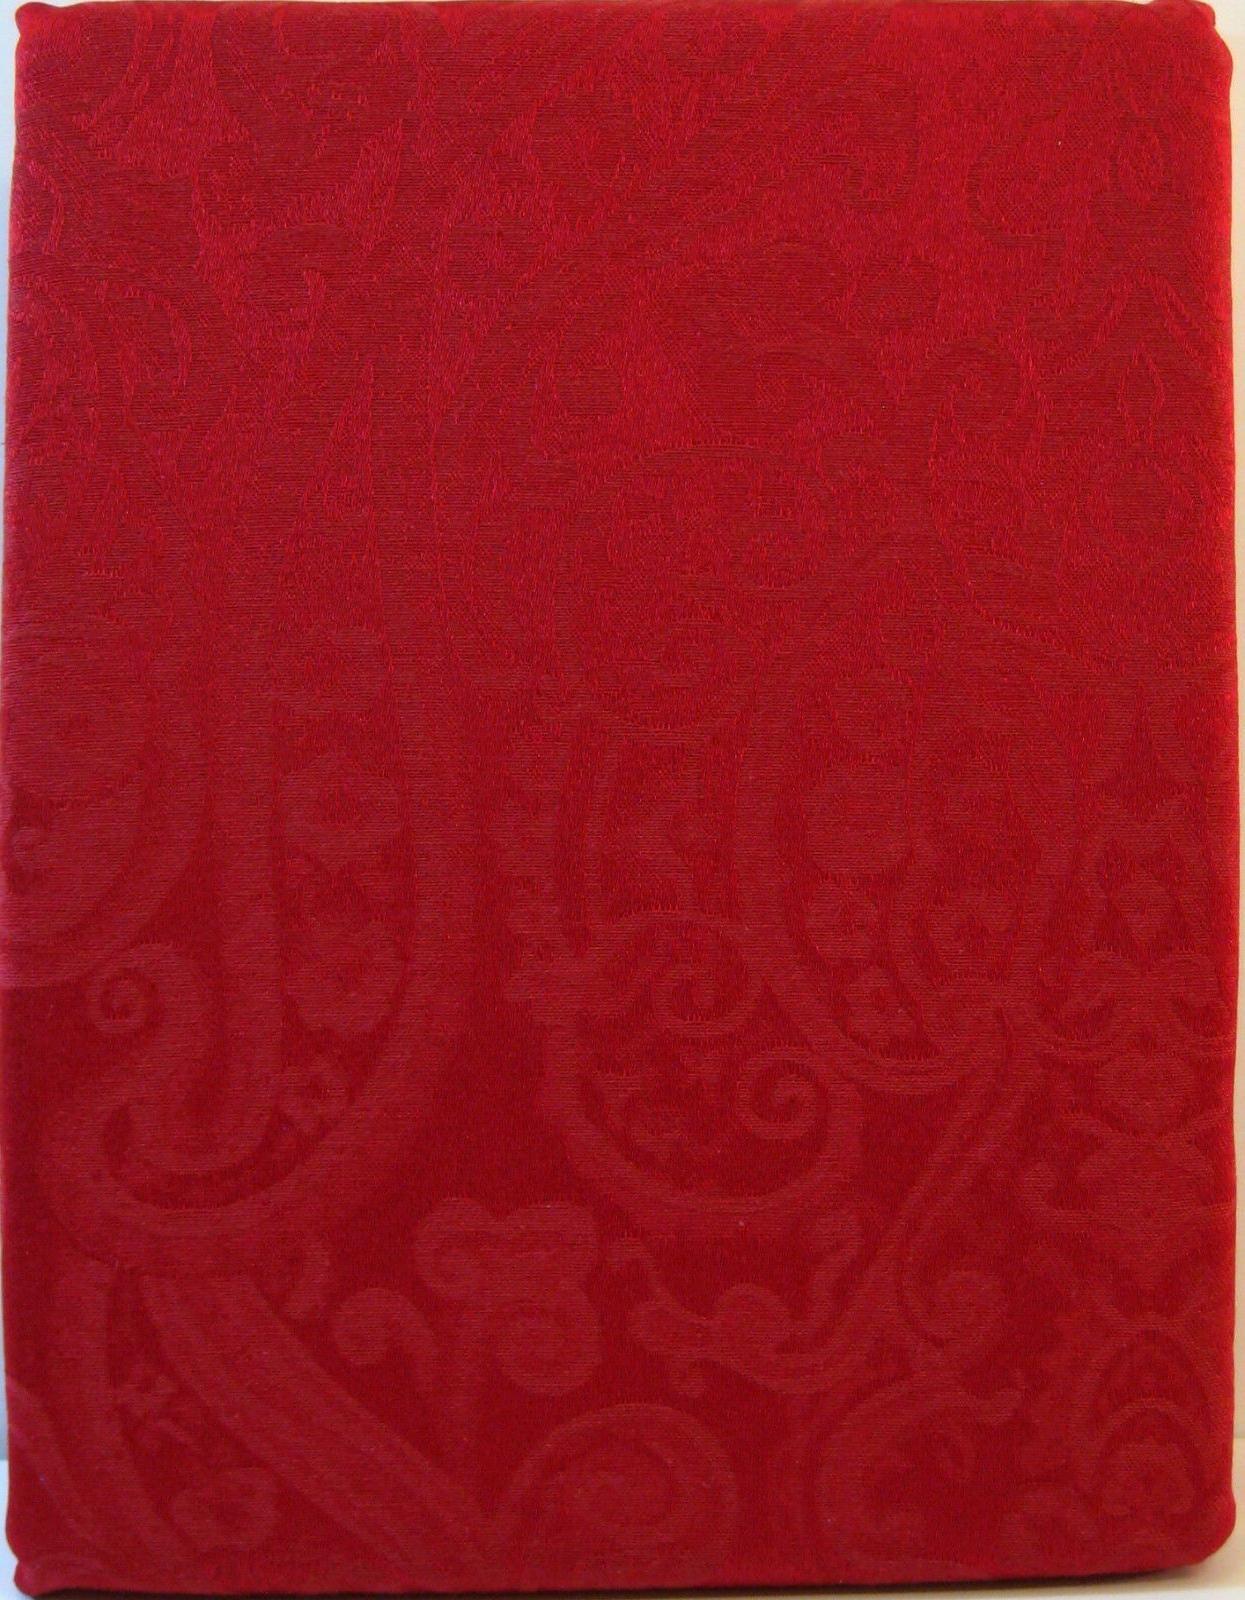 paisley red tablecloth